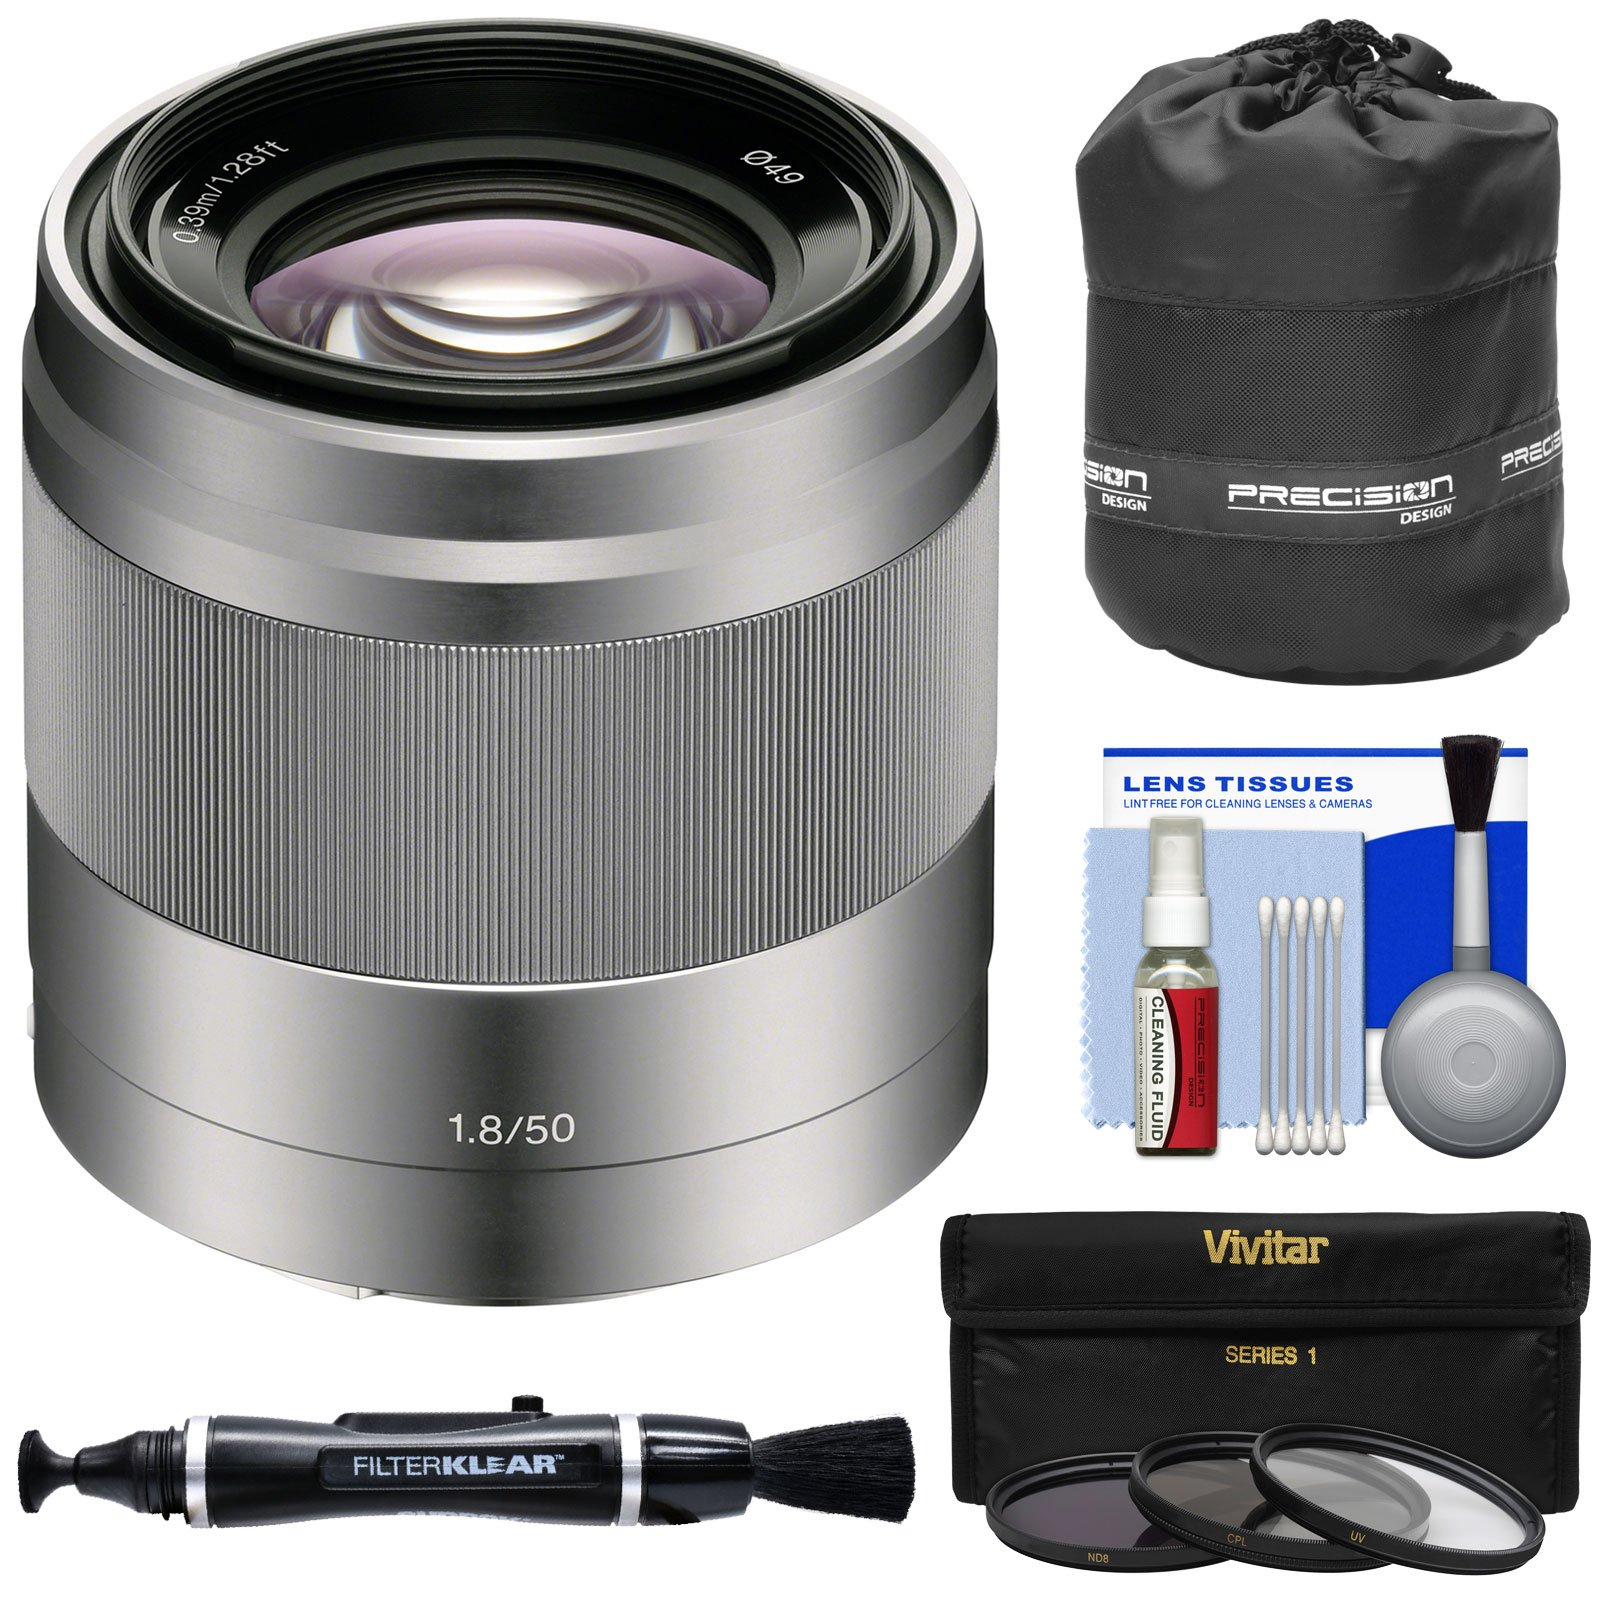 Sony Alpha E-Mount 50mm f/1.8 OSS Lens (Silver) with 3 UV/CPL/ND8 Filters + Pouch + Kit by Sony